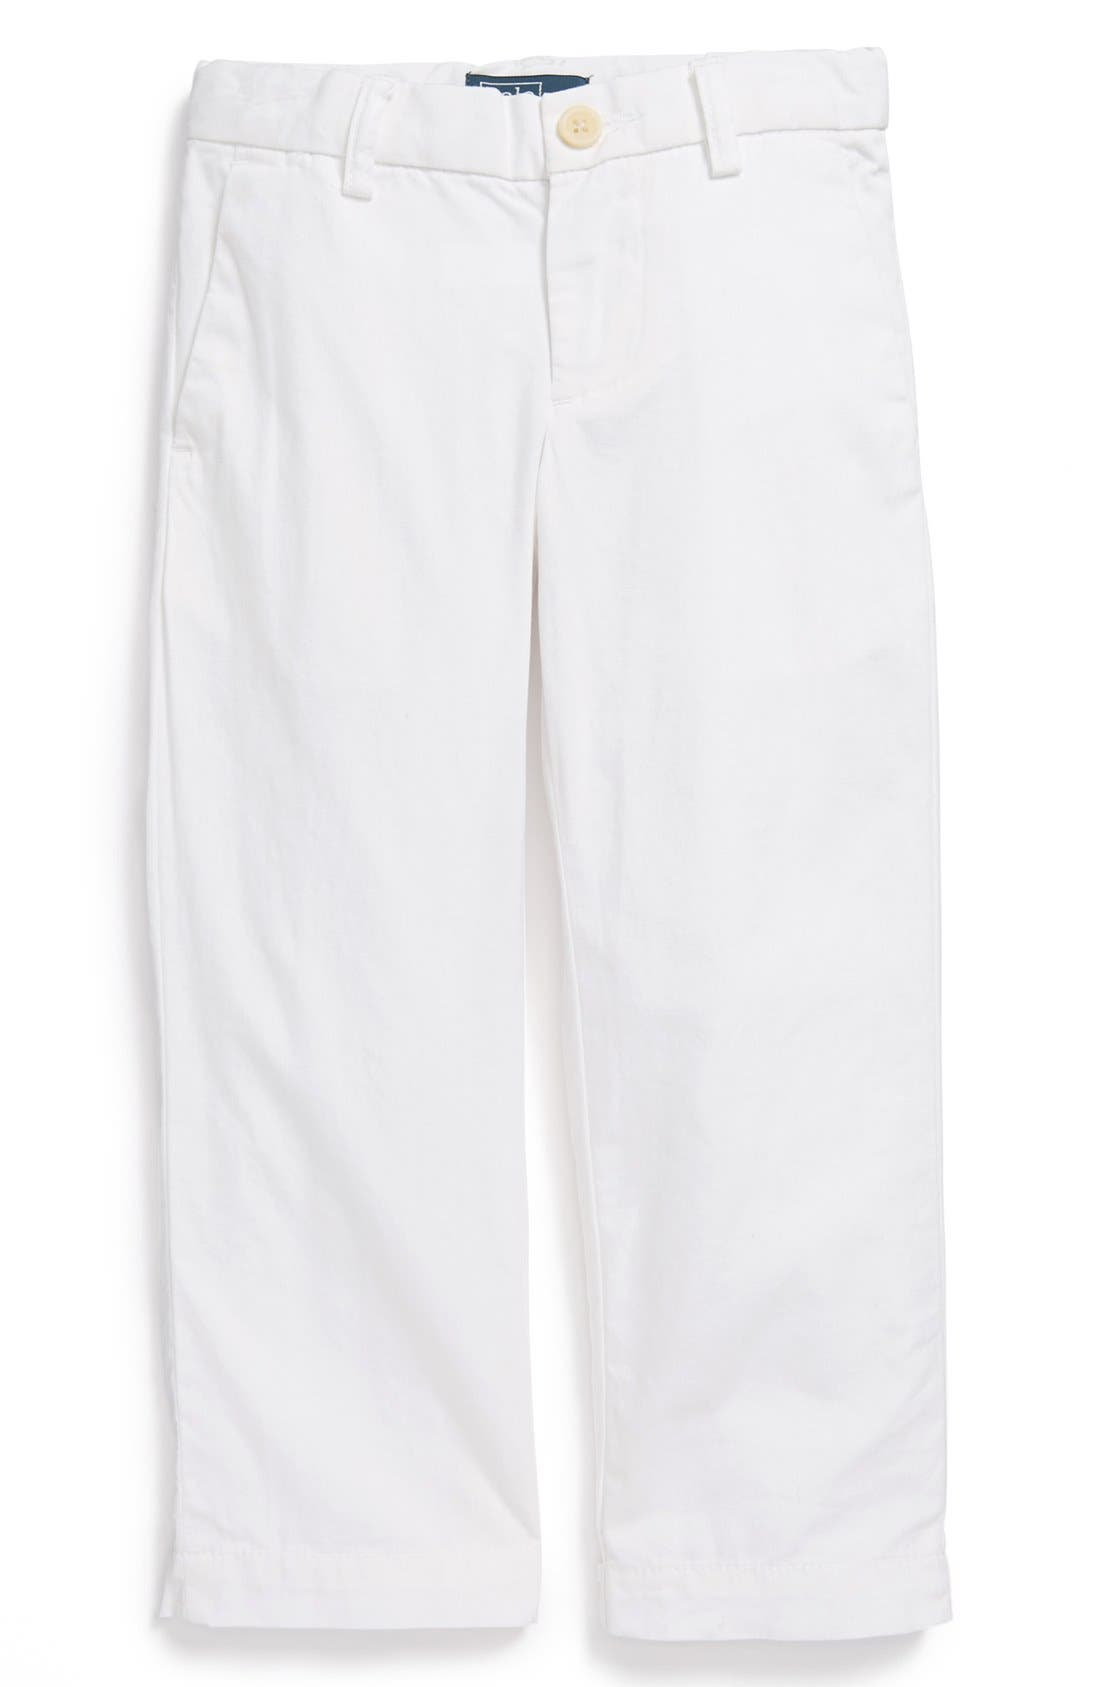 Main Image - Ralph Lauren Straight Leg Pants (Toddler Boys)